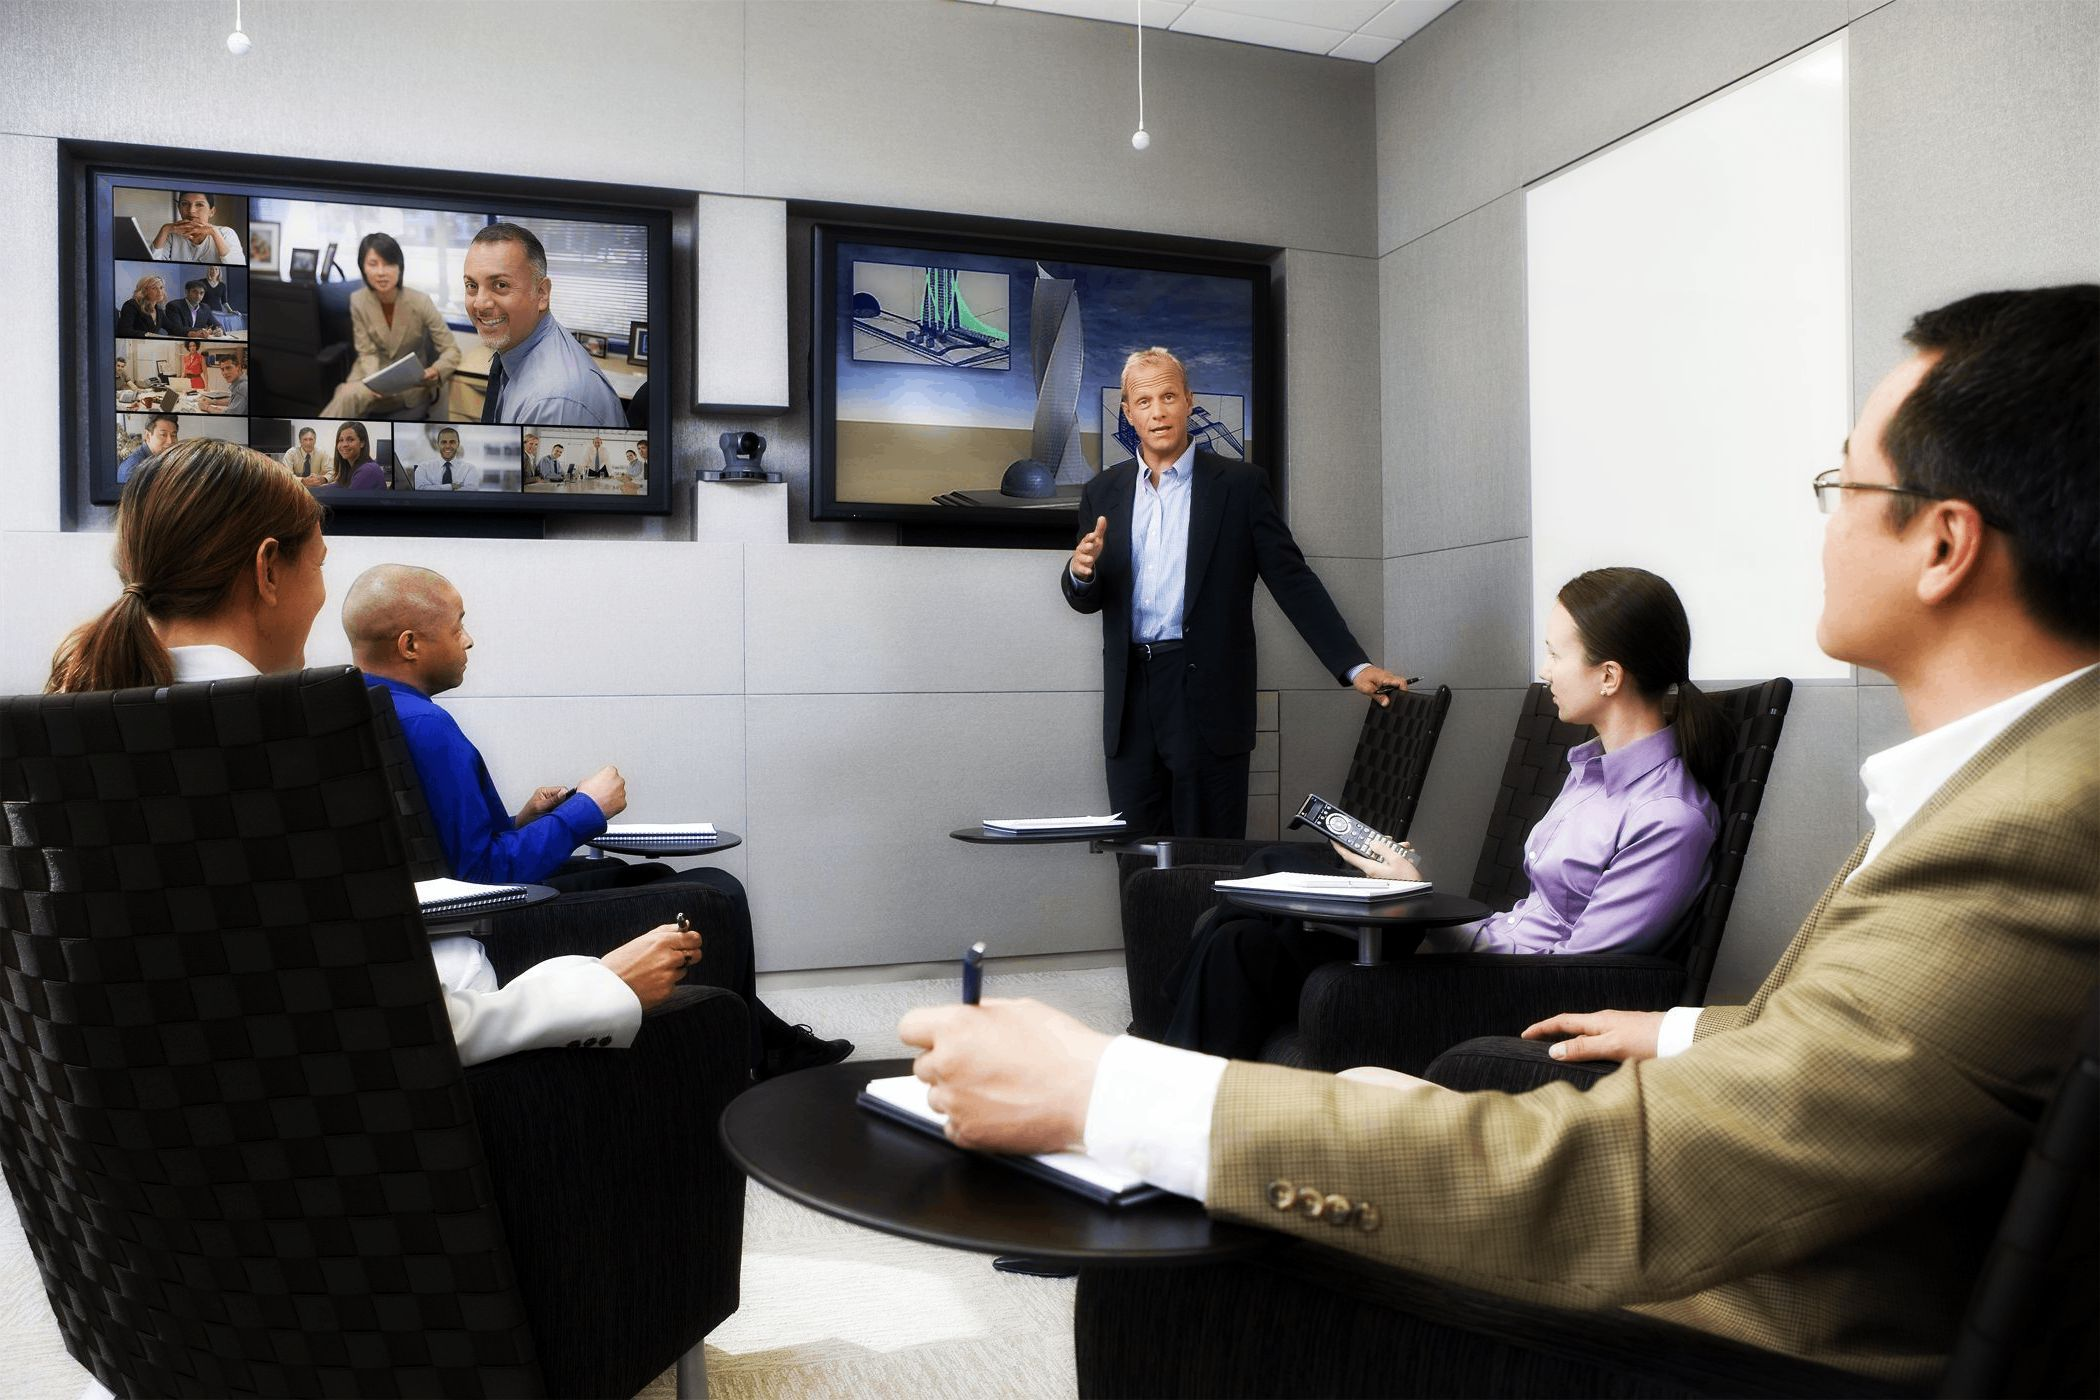 Delhi Meeting Rooms: A Guide to Effective Video Conferencing at Worldmark 2 Aerocity